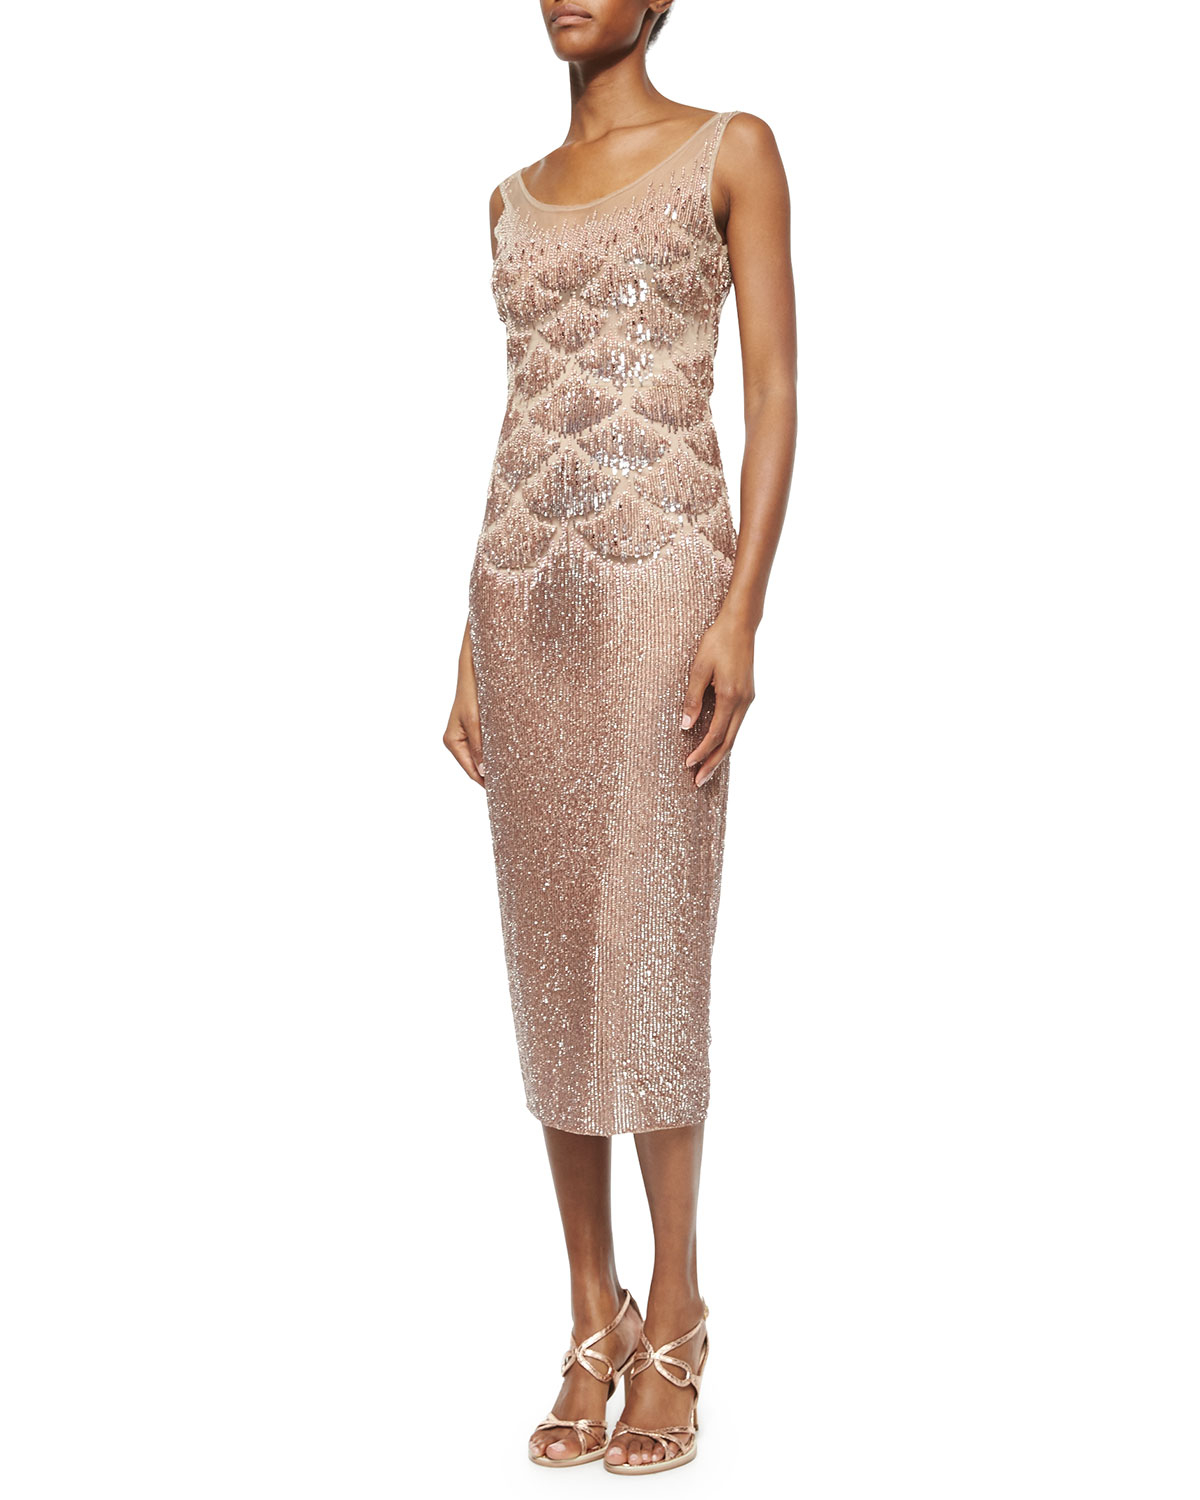 Lyst - Jenny Packham Beaded Fishscale Illusion Cocktail Dress in Natural